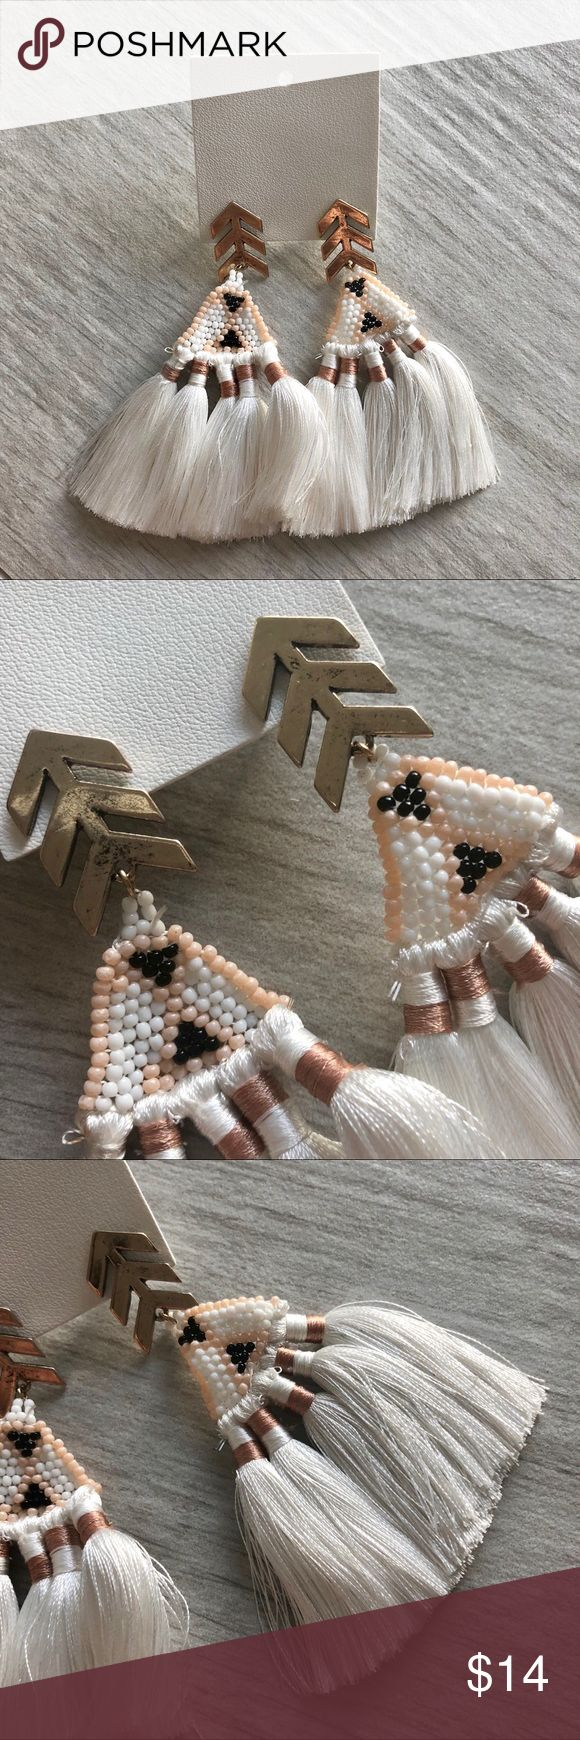 Free People Duster Earrings Free People white string and bead duster earrings with peach and black accent. Never worn. Still in stores!  Bundle your likes for a great discount! Free People Jewelry Earrings